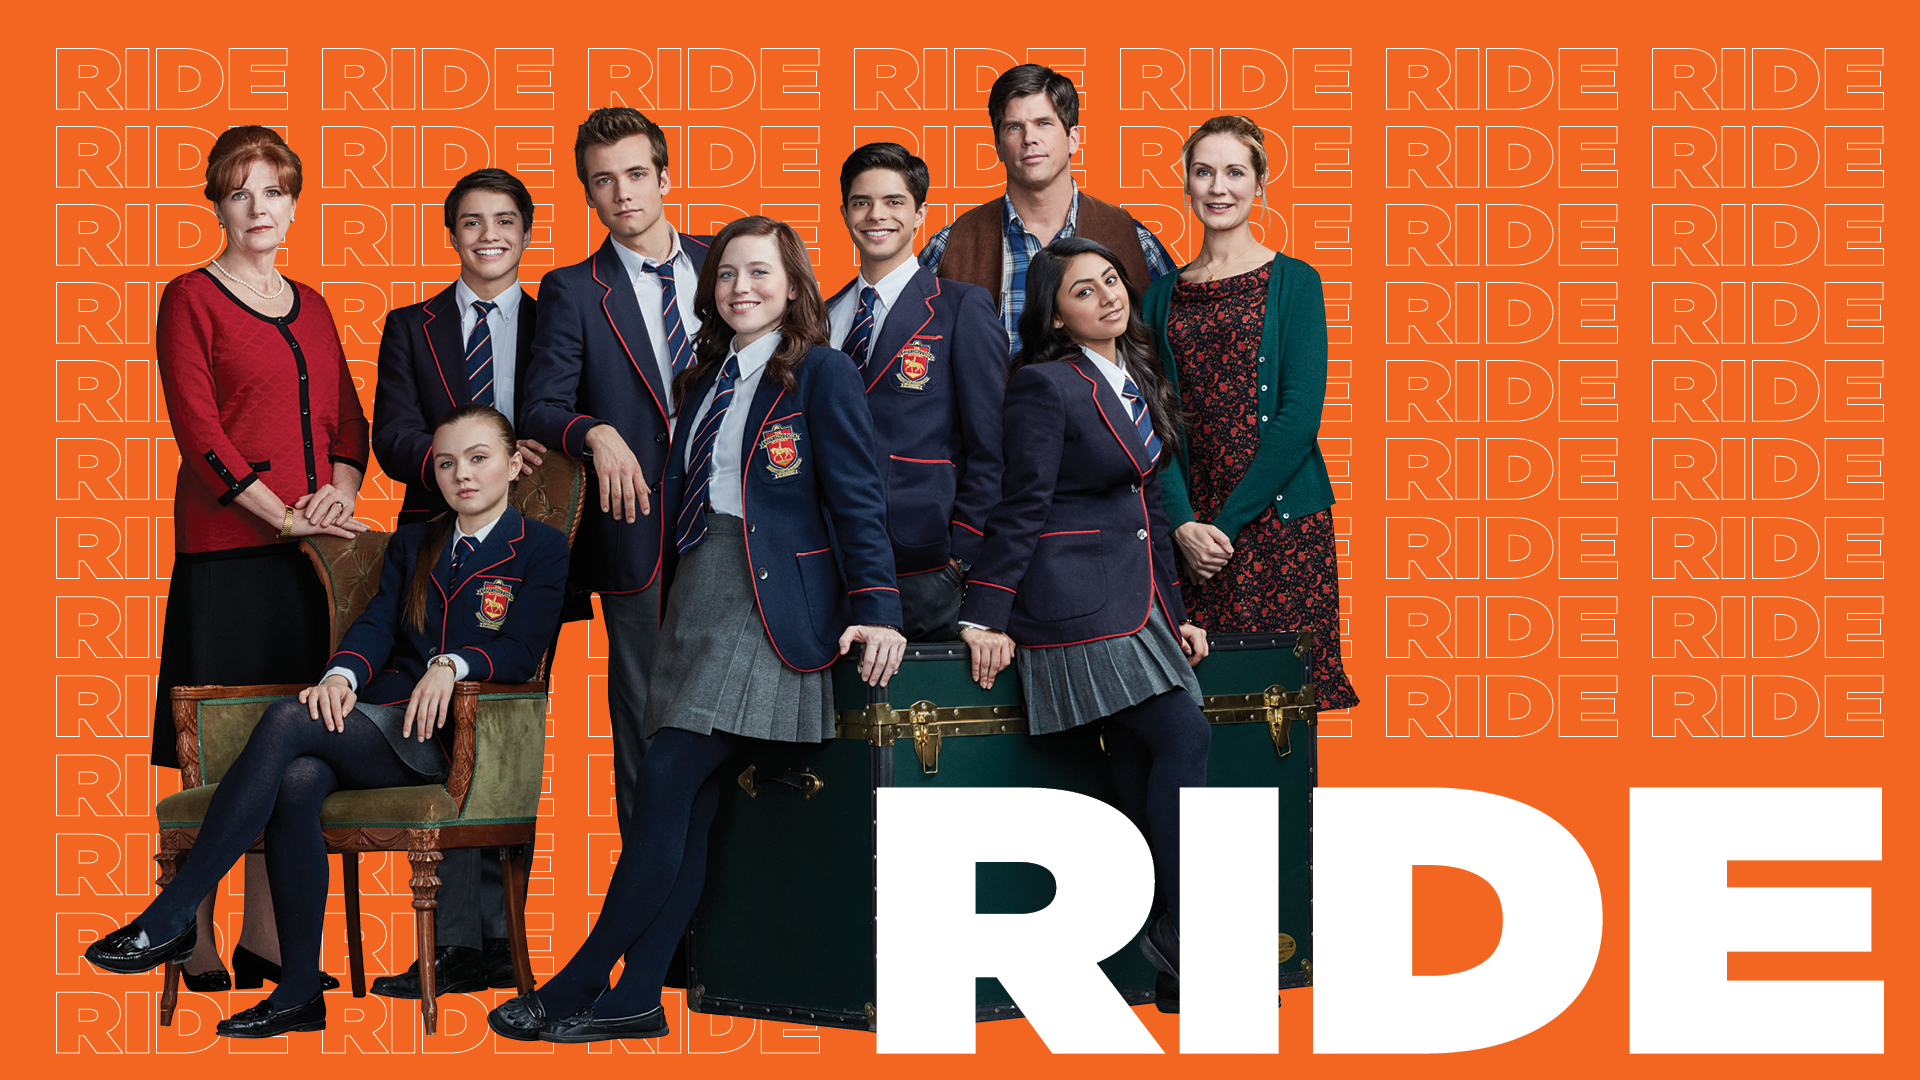 JPG_TEENNICK_ride